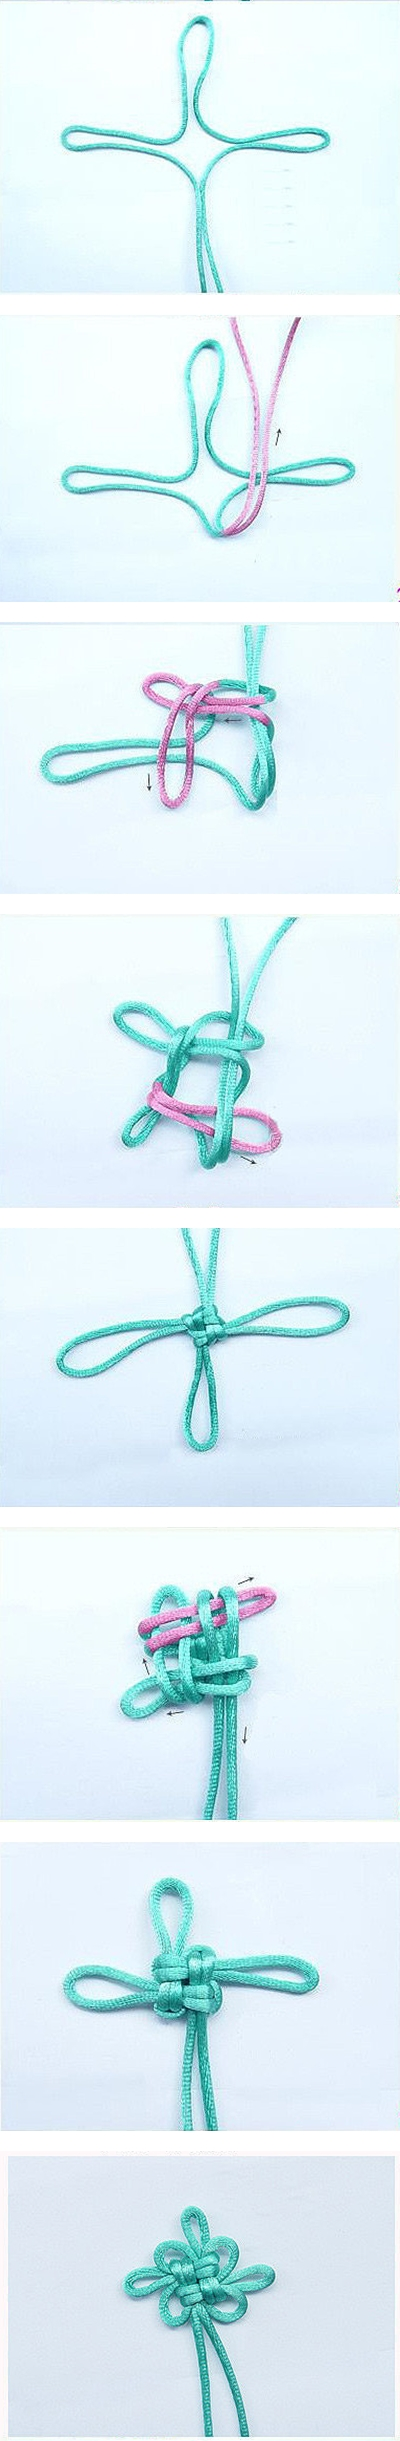 How to make lovely Chinese knot step by step DIY tutorial instructions